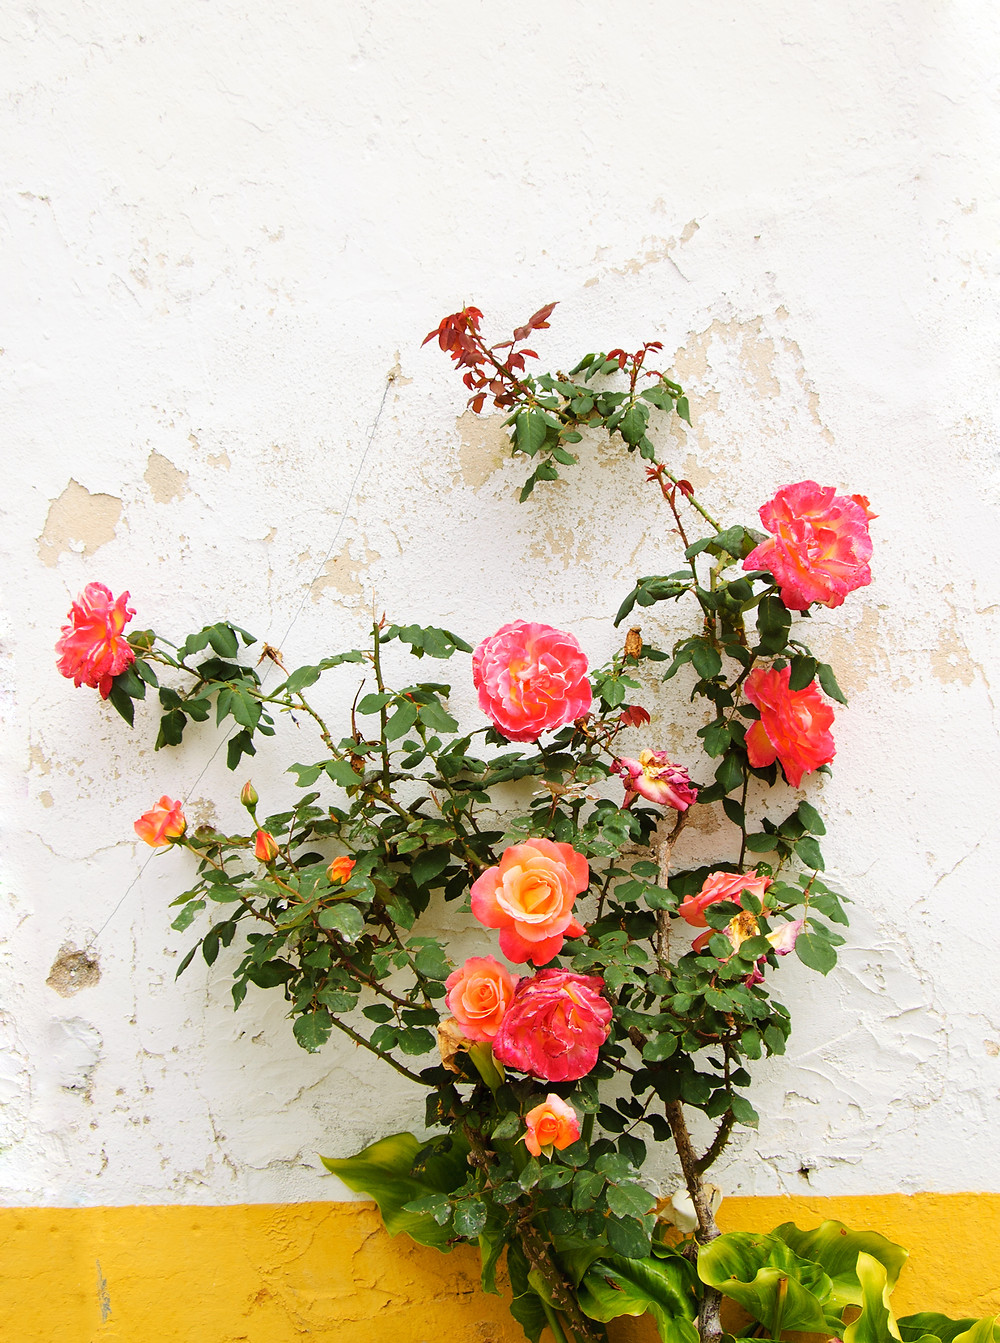 roses on a yellow trimmed wall in Obidos Portugal